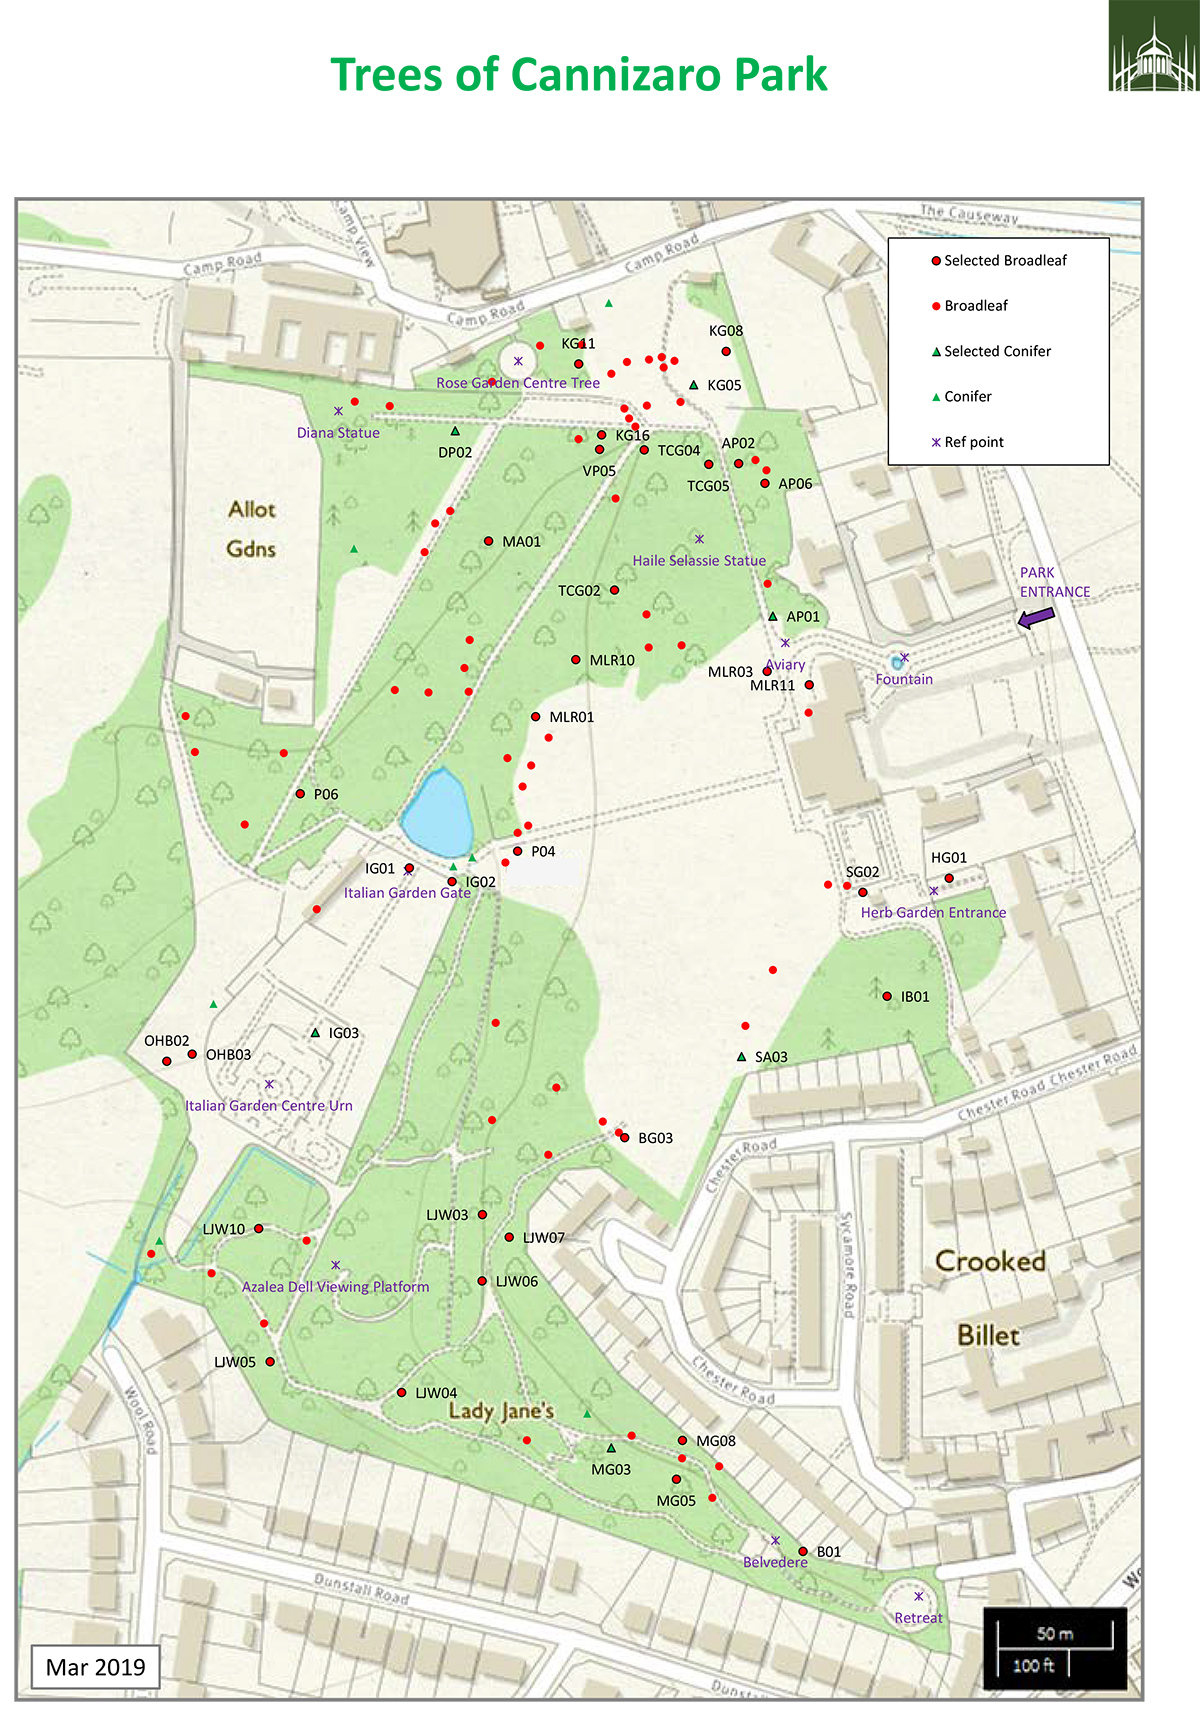 Map of Trees in Cannizaro Park